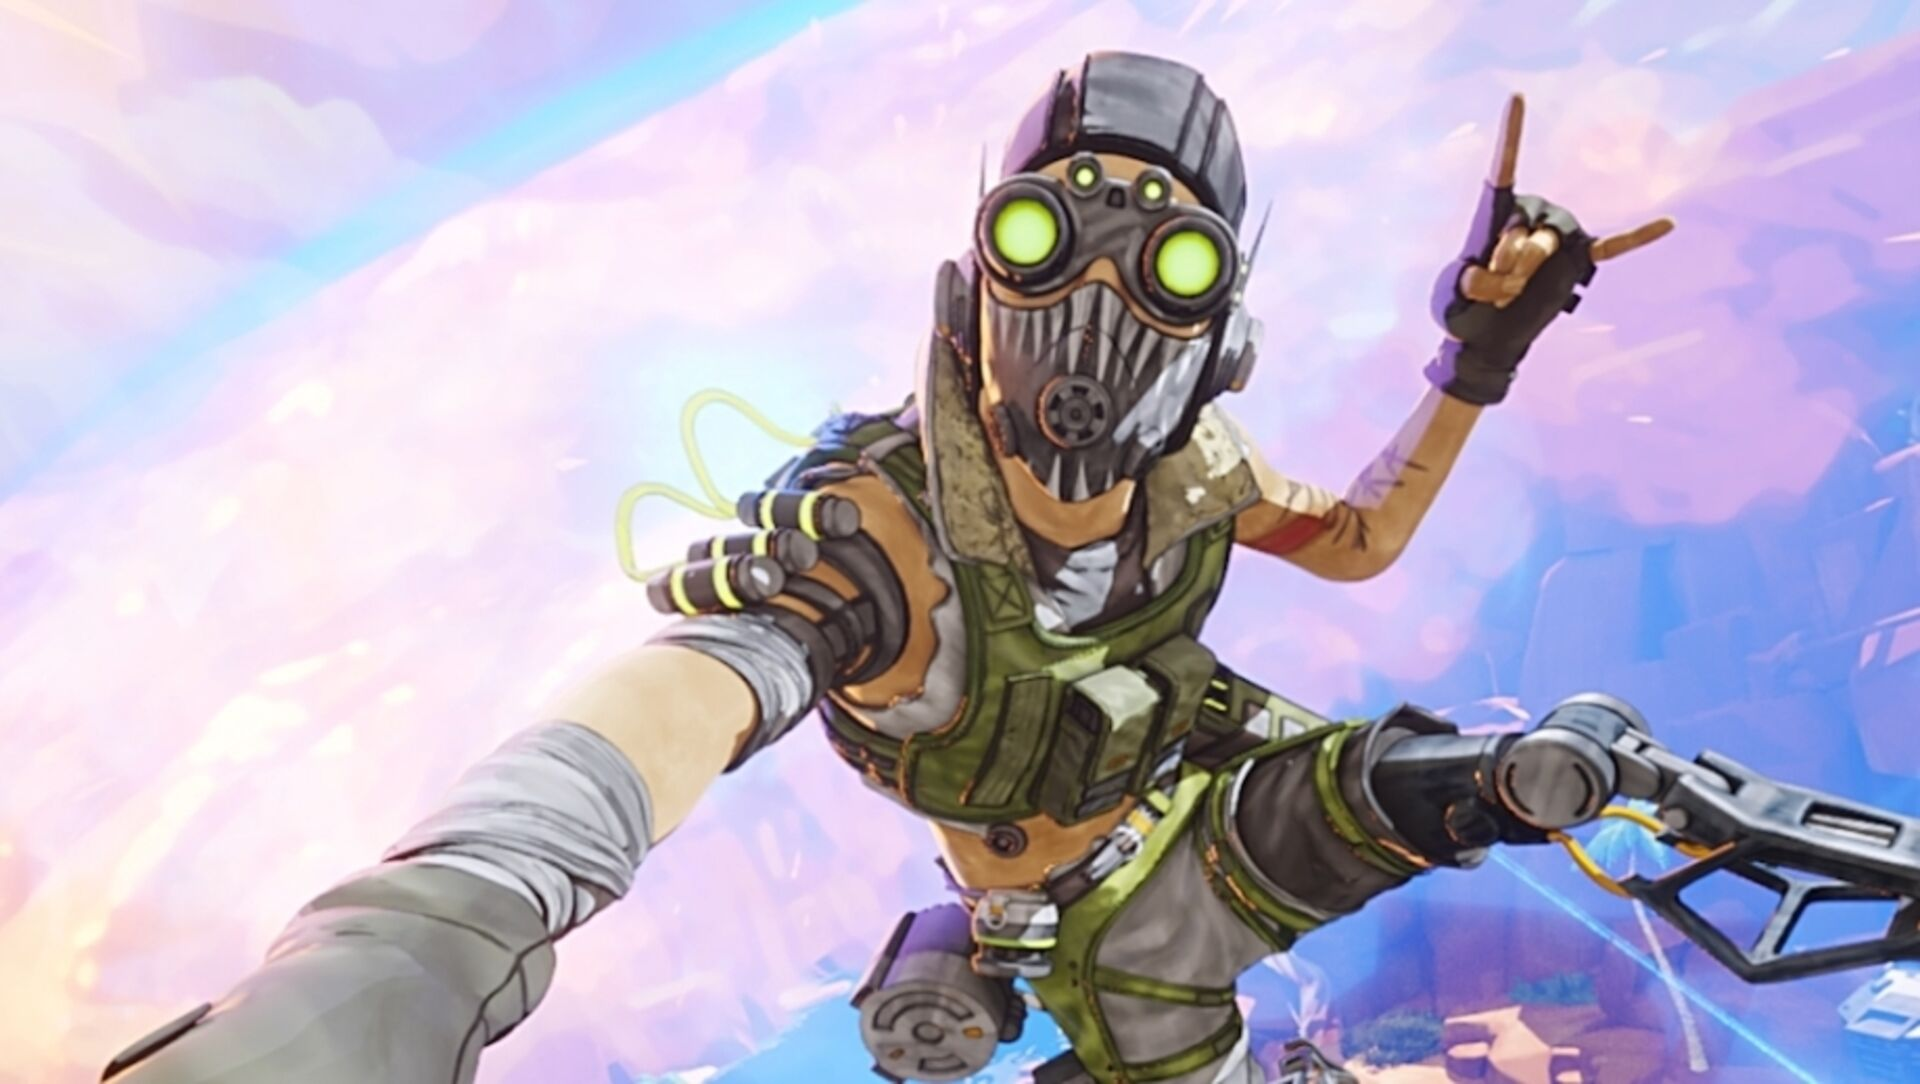 Apex Legends has a bunch of fan-requested quality of life changes on